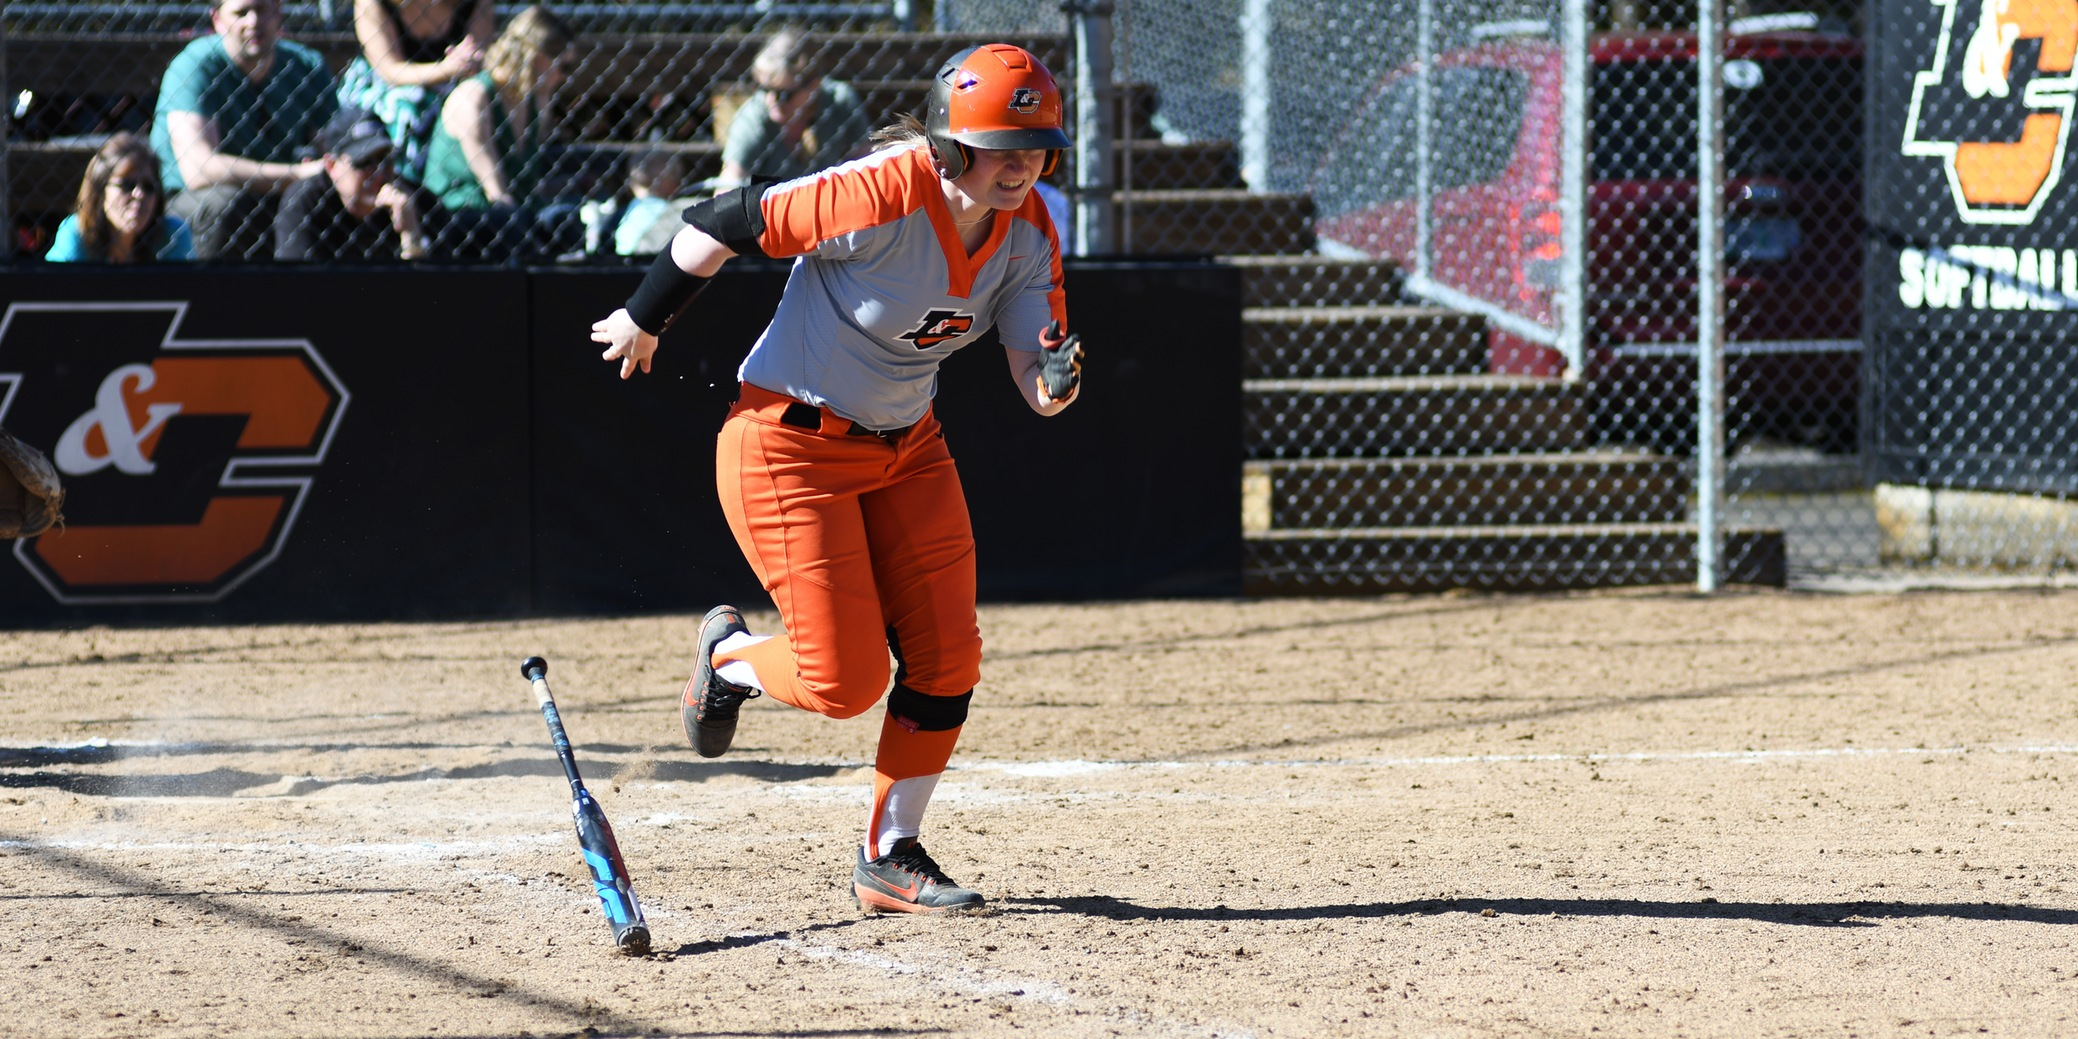 Brackin and Zimmerman go long as Pioneers earn first win in Florida, drop close game to Colby